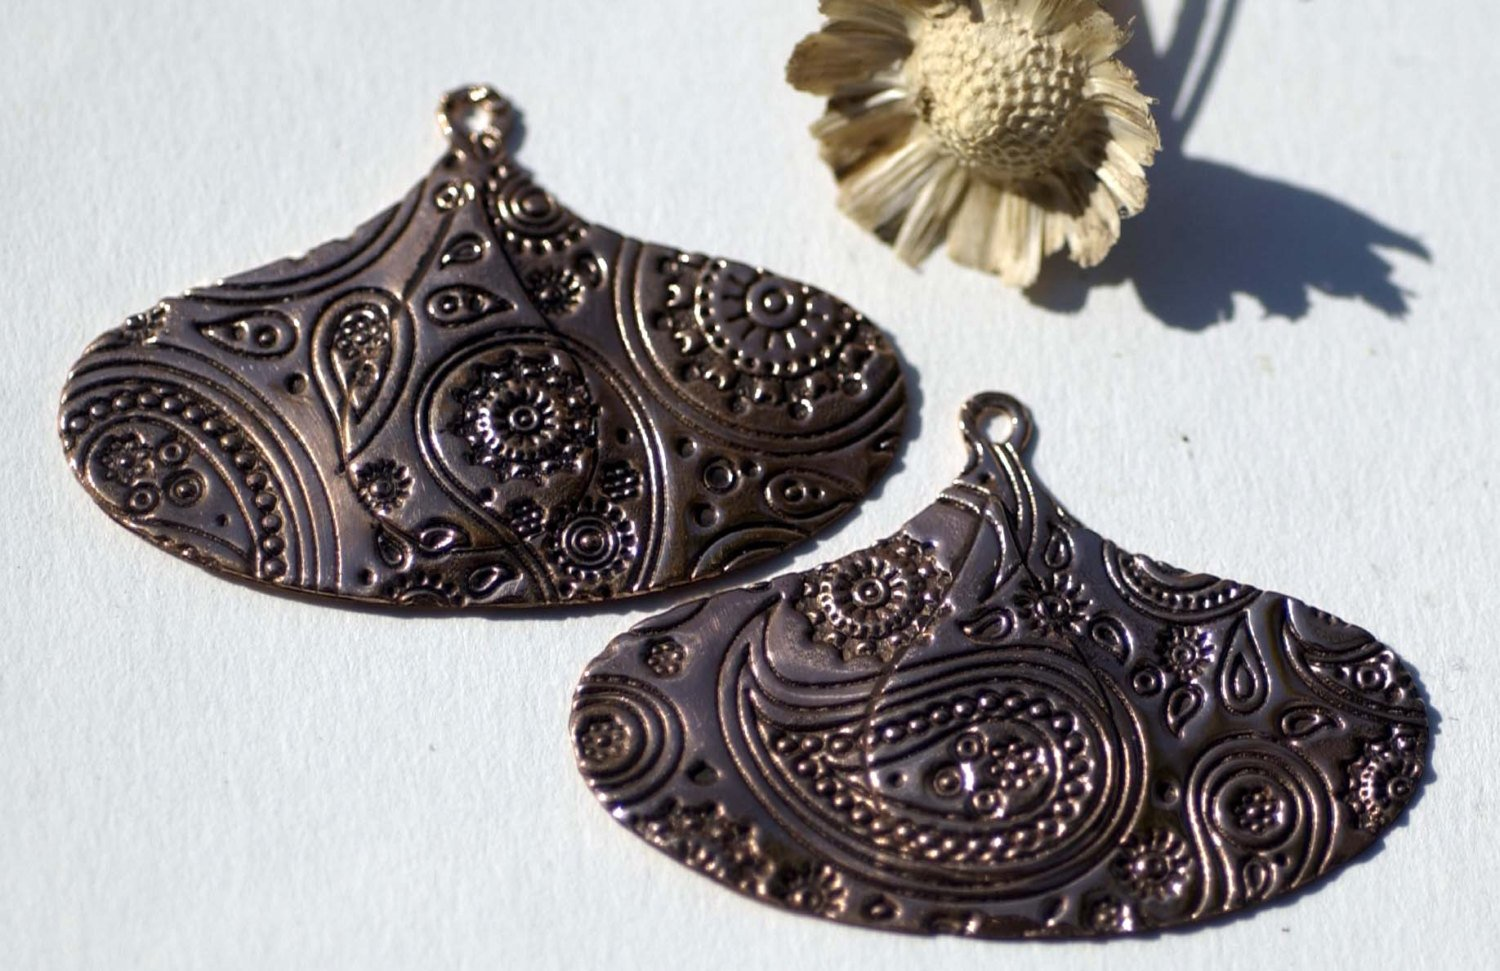 24mm x 15mm Teardrop Embossed Paisley Texture Shape Cutout Blank for Metalwork Enameling Stamping Texturing Blanks Variety of Metals